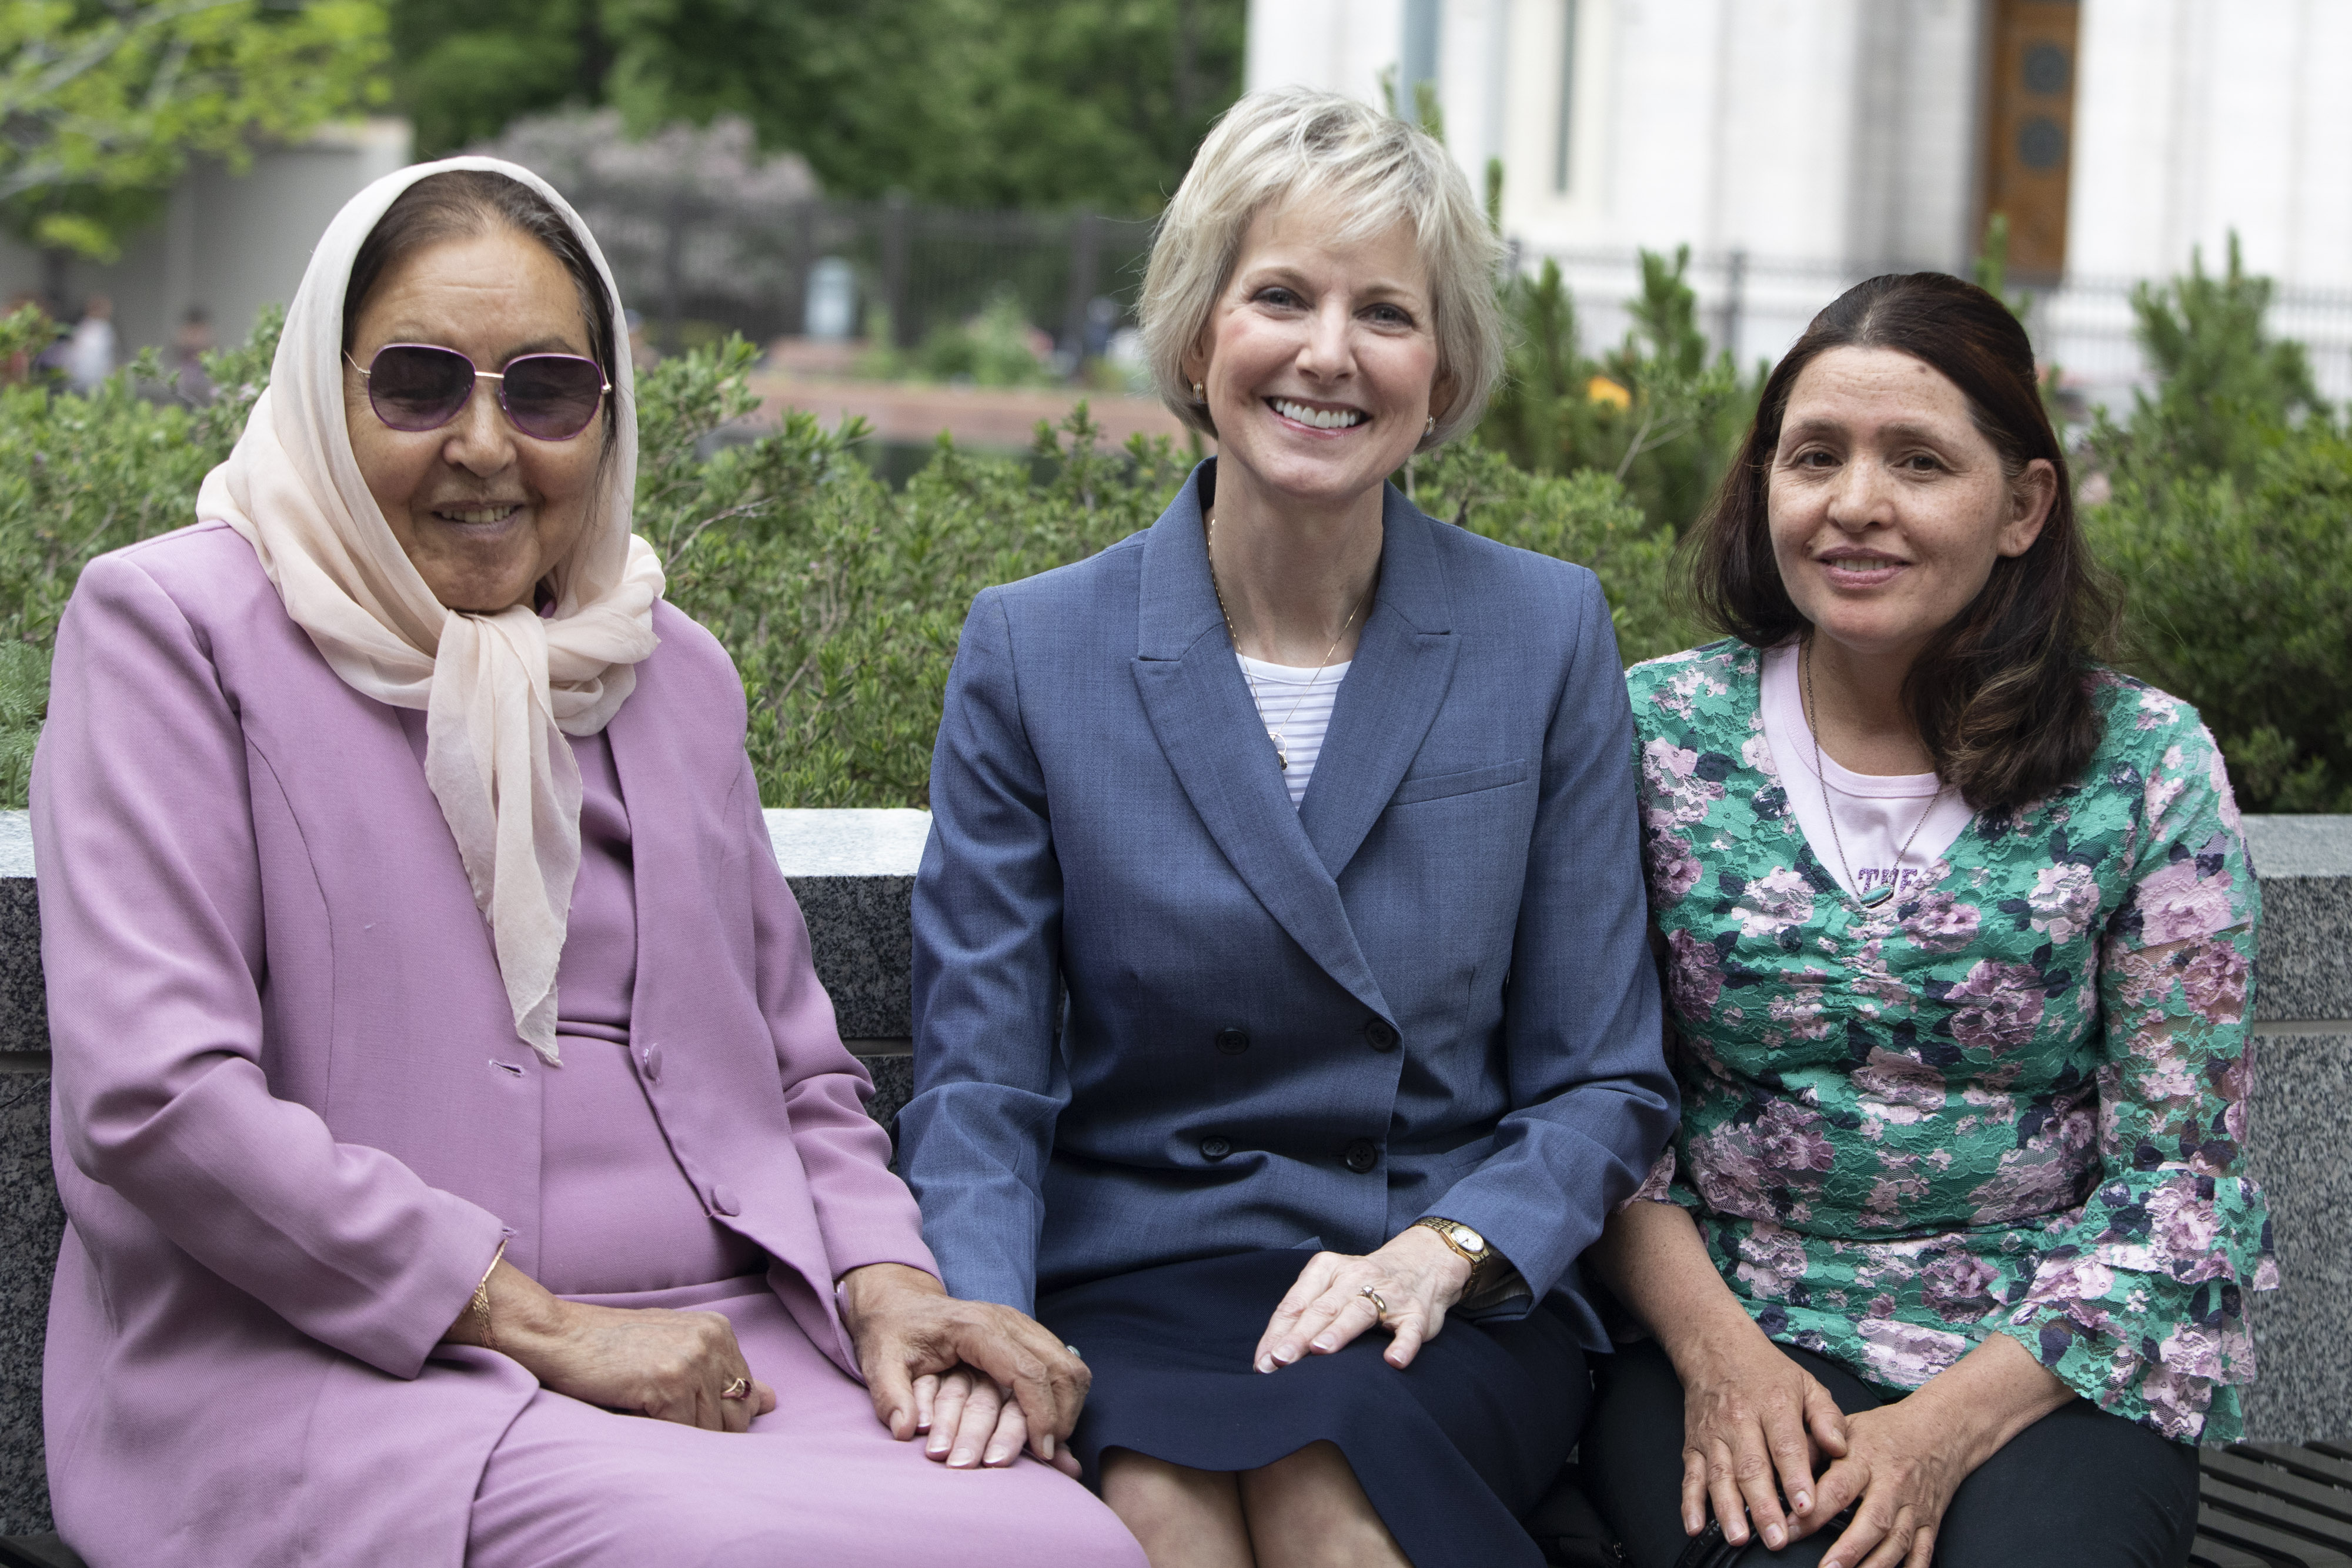 Sister Jean B. Bingham and her friends Asifa Nadir, left, and Nadira Nadir sit outside the Relief Society Building on Temple Square prior to an interview with representatives from USA for UNHCR on May 16, 2019. Sister Bingham has known the Nadir family, refugees from Afghanistan for nearly 15 years.